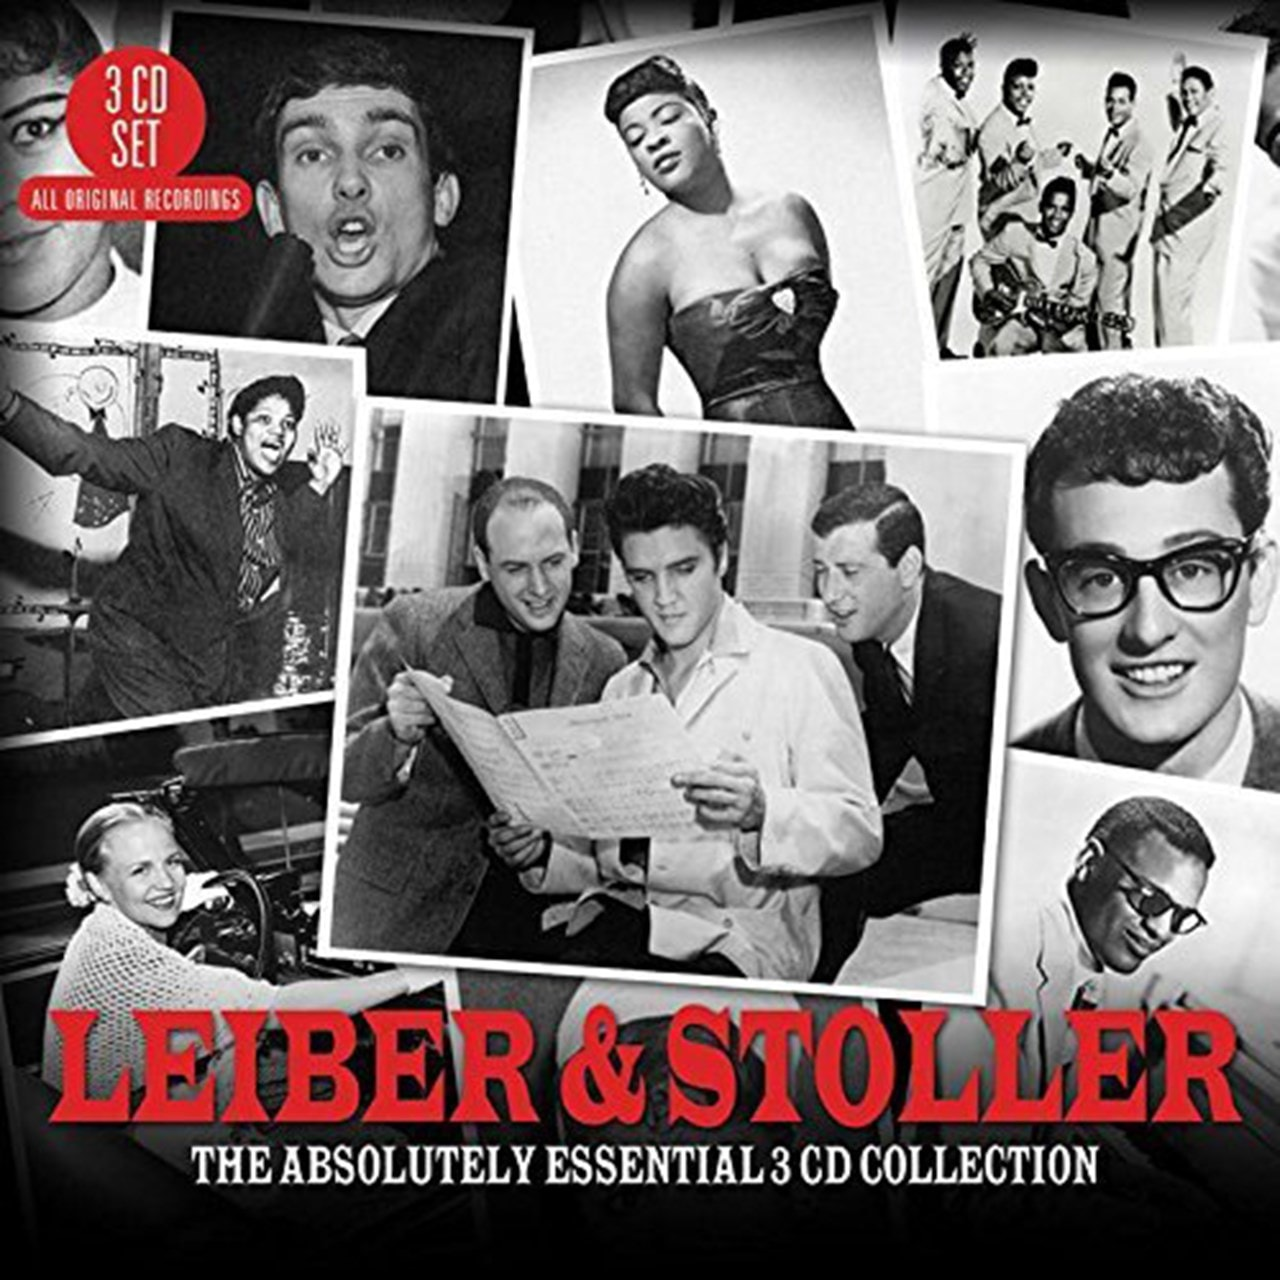 Leiber & Stoller: The Absolutely Essential 3CD Collection - 1